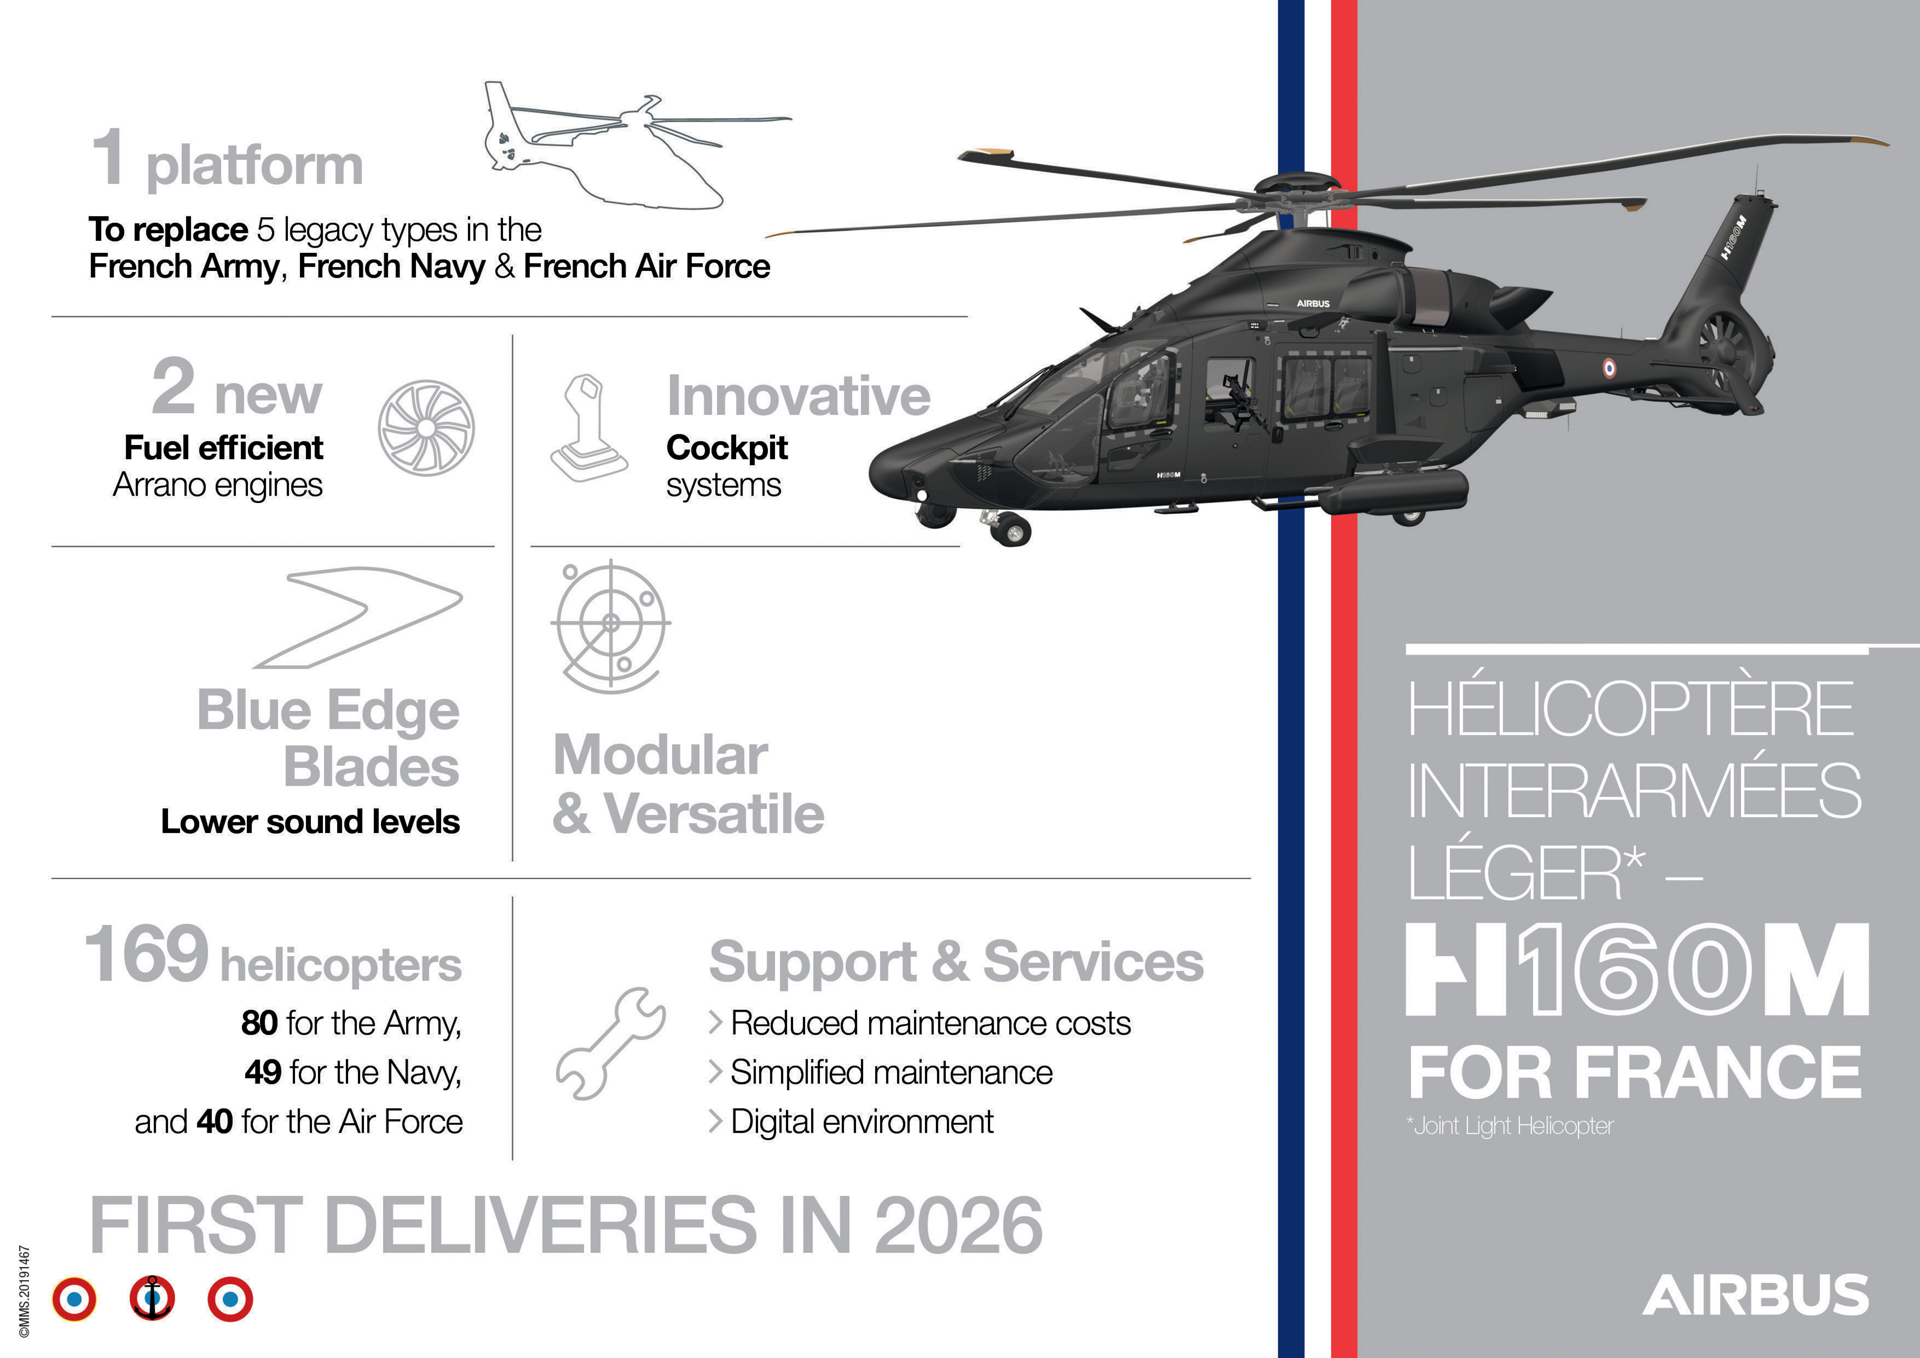 An infographic highlighting the Airbus H160M military helicopter and its capabilities for France.